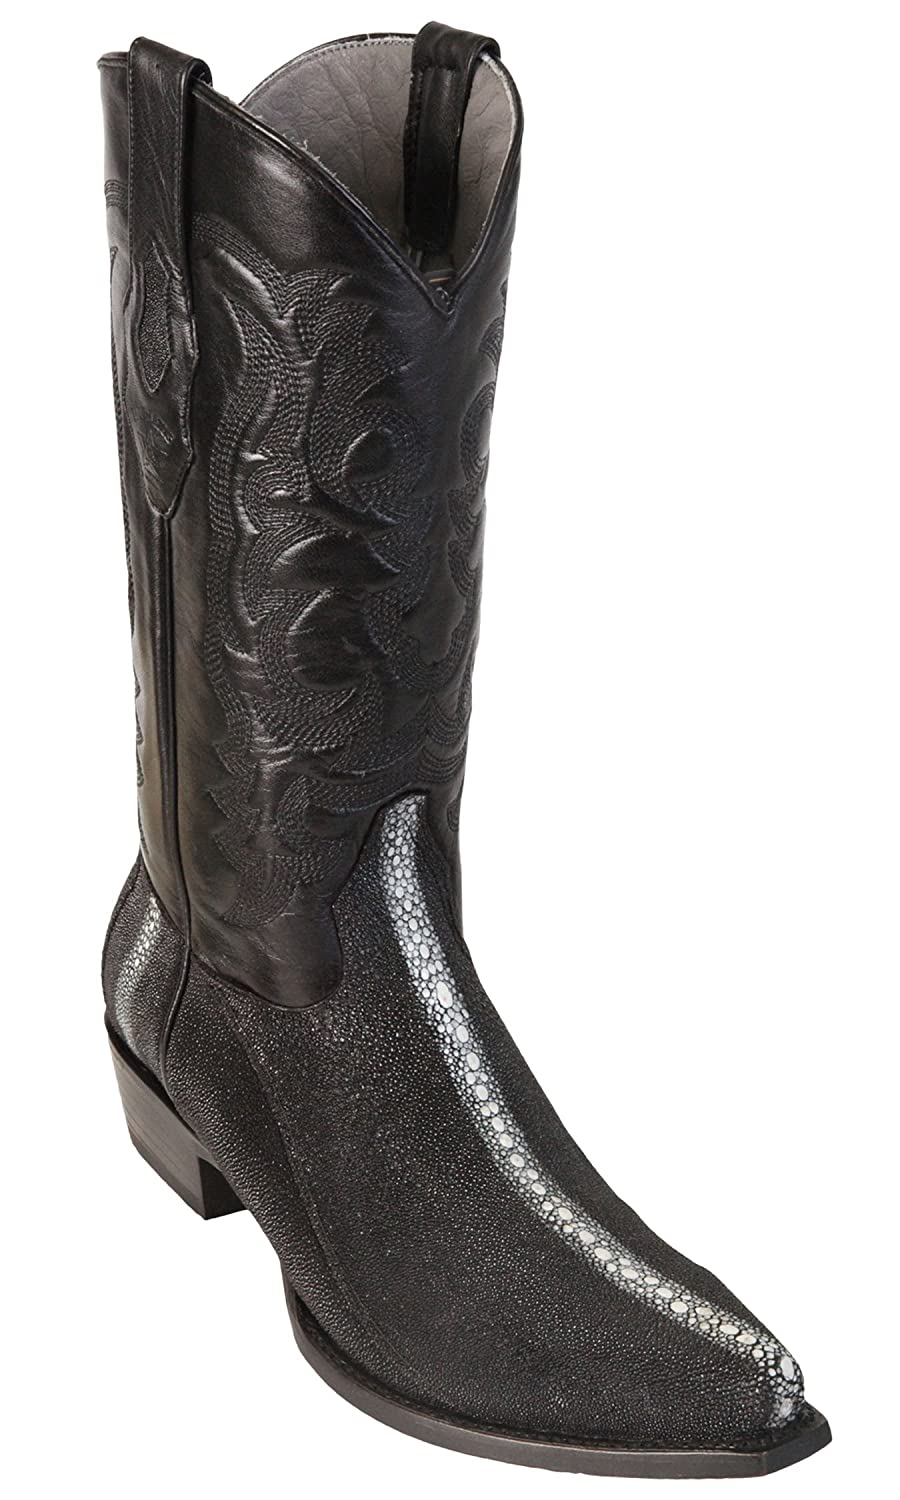 Men's Sinp Toe Row Stone Black Genuine Leather Stingray Skin Western Boots - Exotic Skin Boots